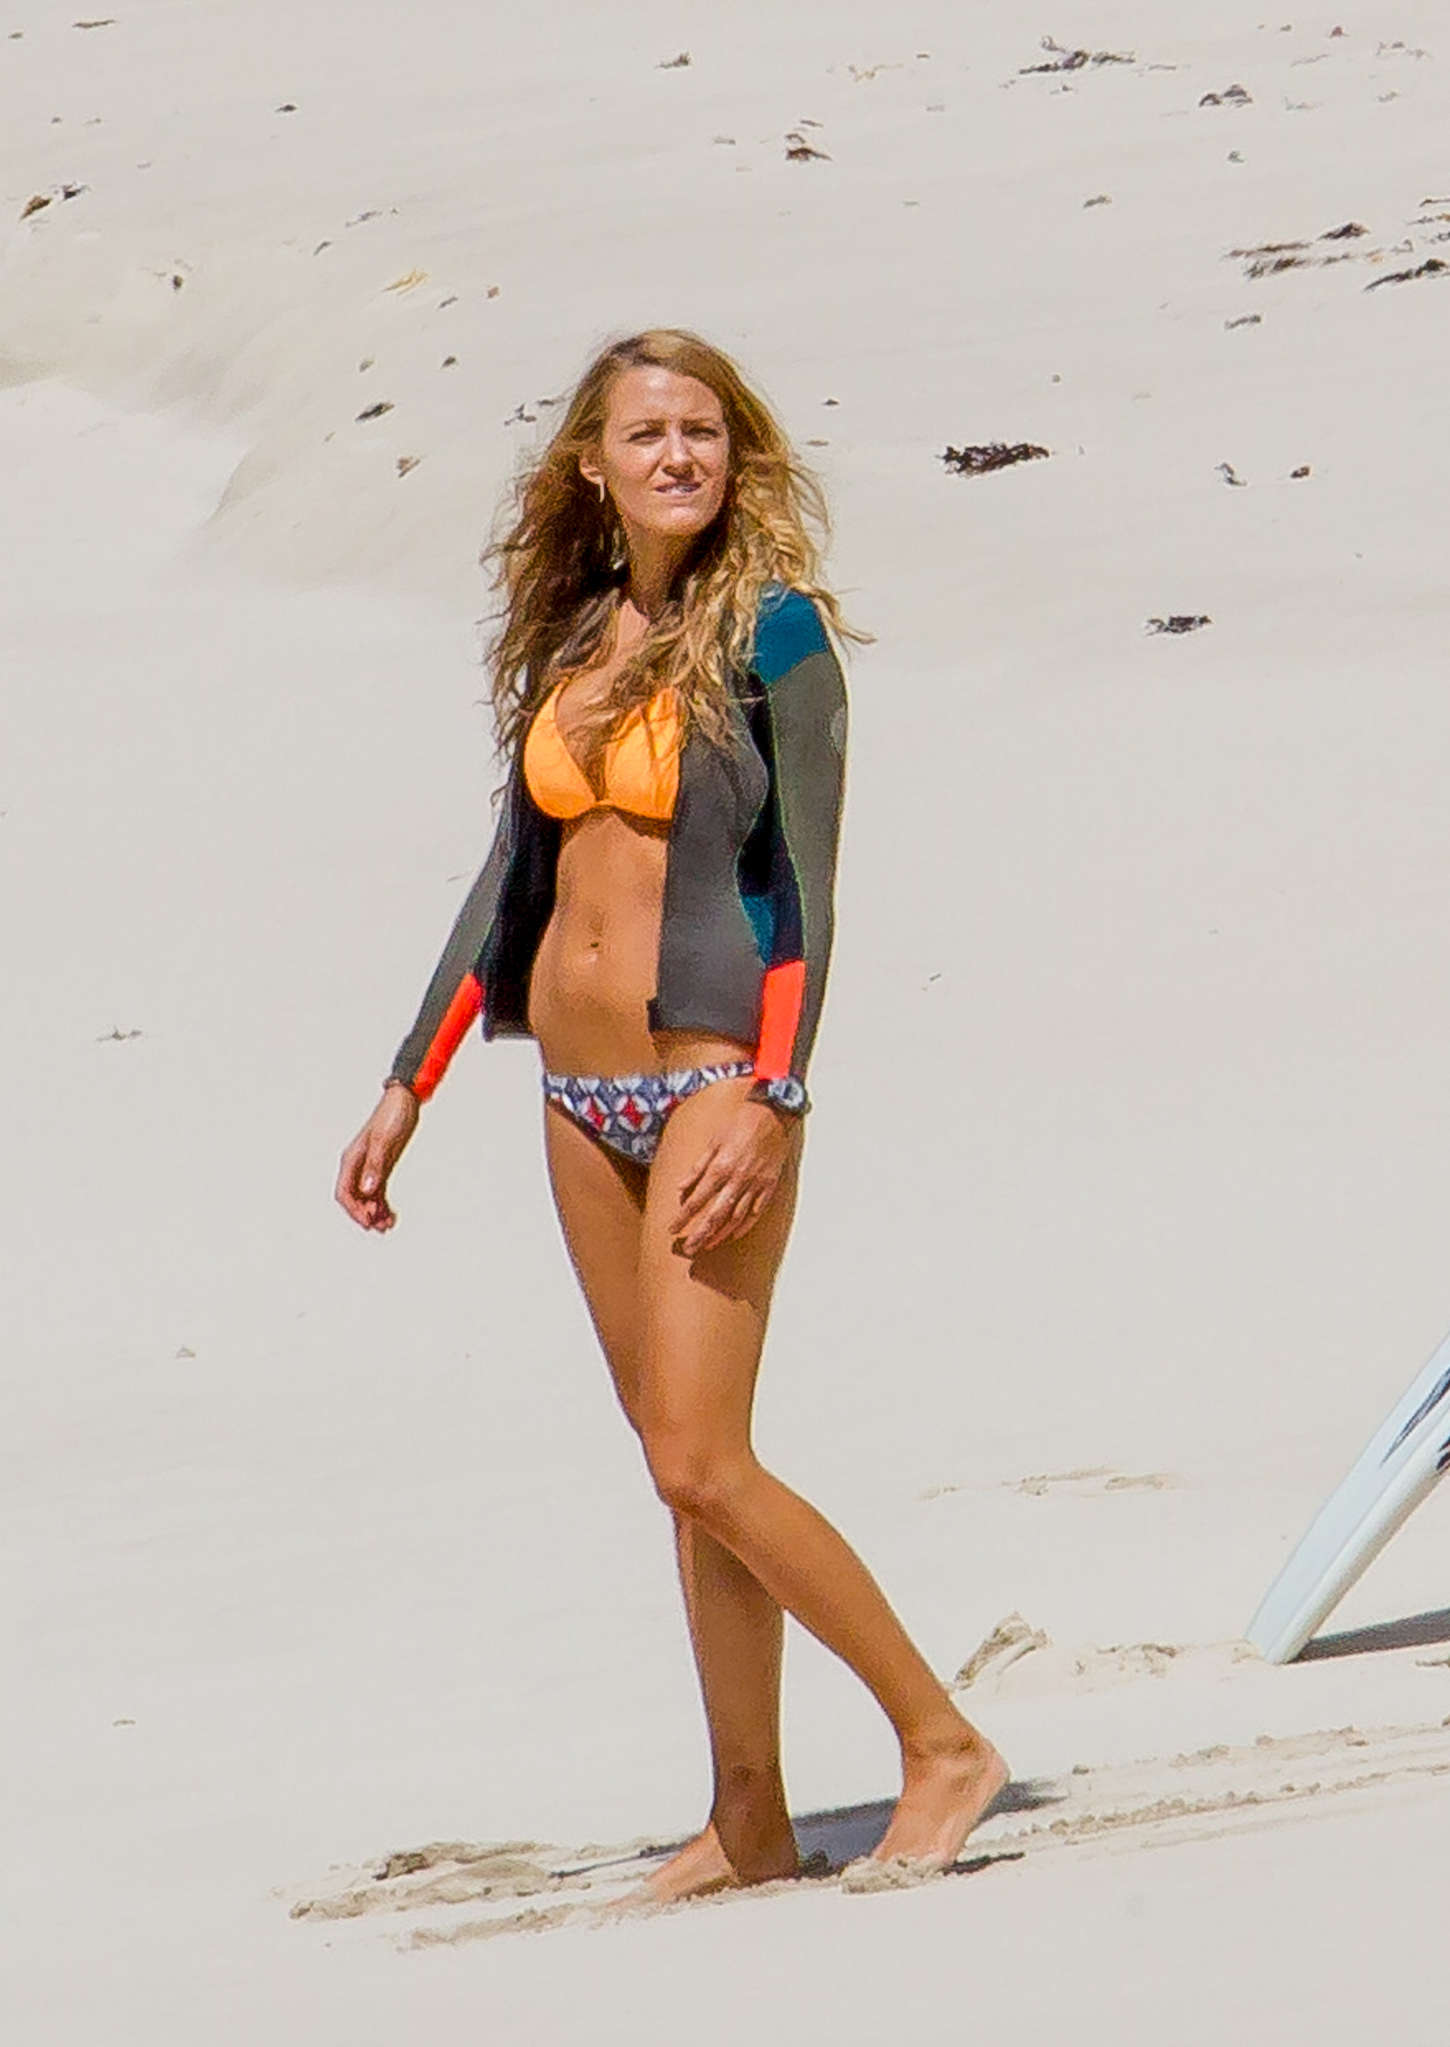 Blake Lively sexy beach bikini photo